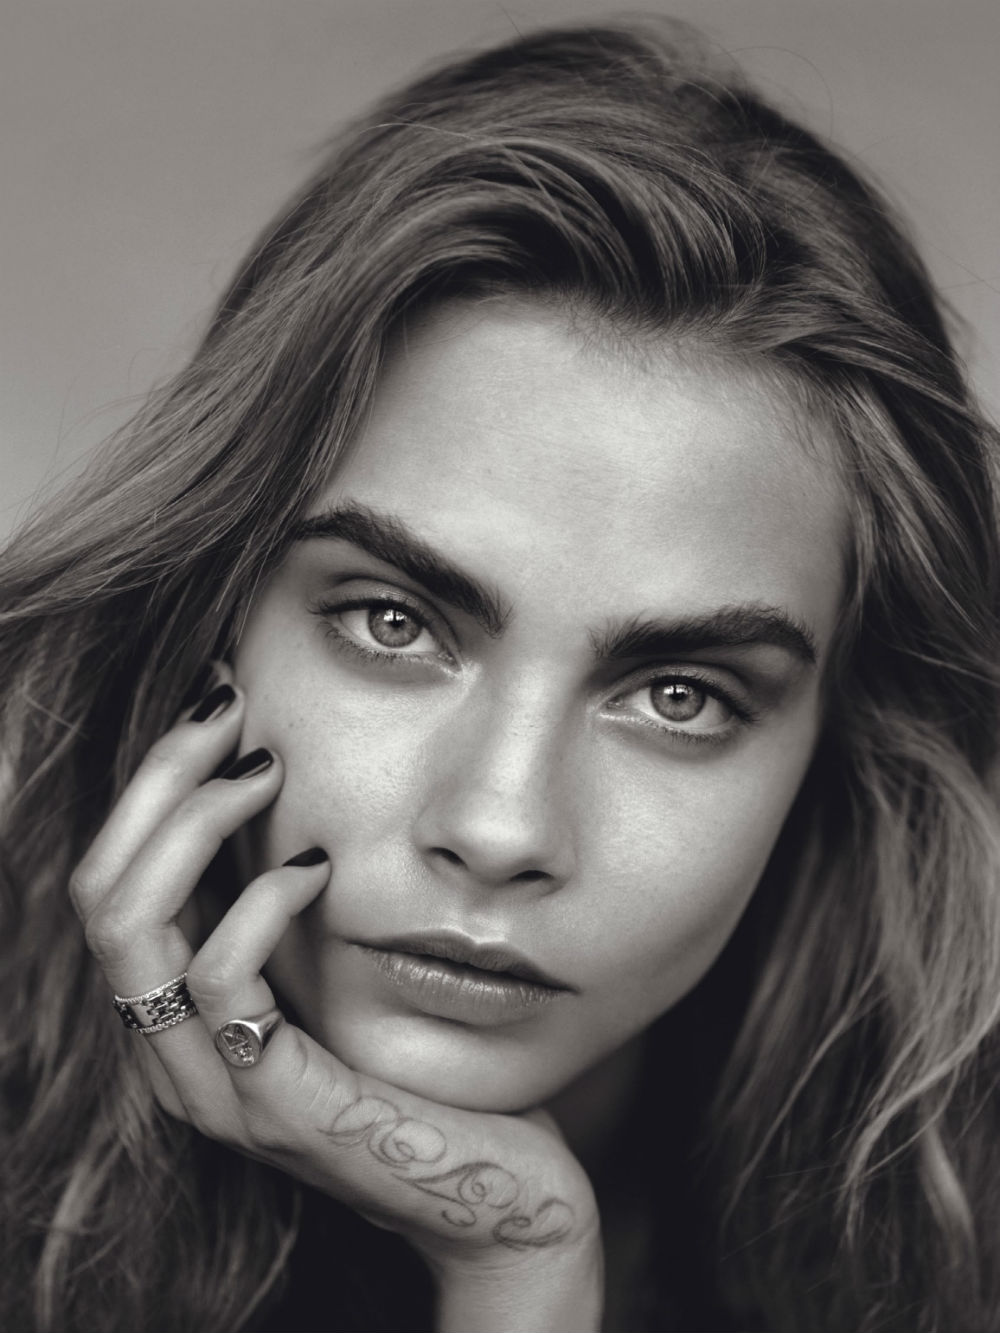 cara-delevingne-by-alasdair-mclellan-for-vogue-uk-january-2014-9